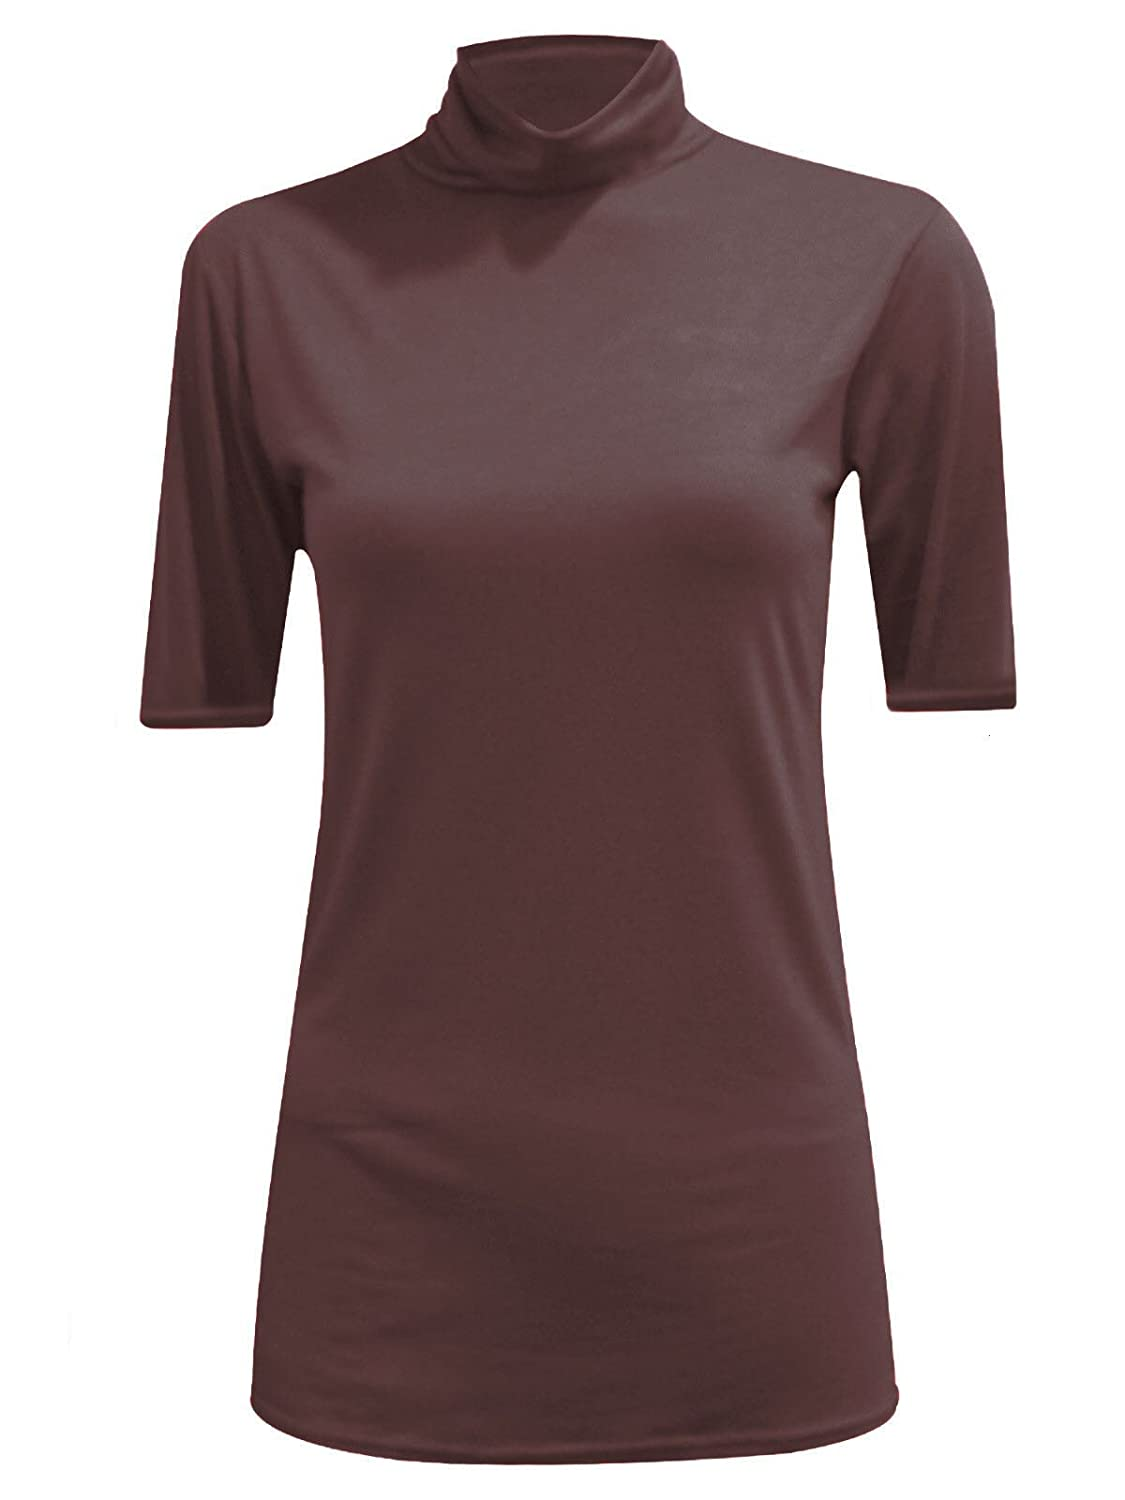 Comfiestyle New Womens Ladies Casual Plain Short Sleeves Polo Neck Top Dress Plus Size. UK 8-26